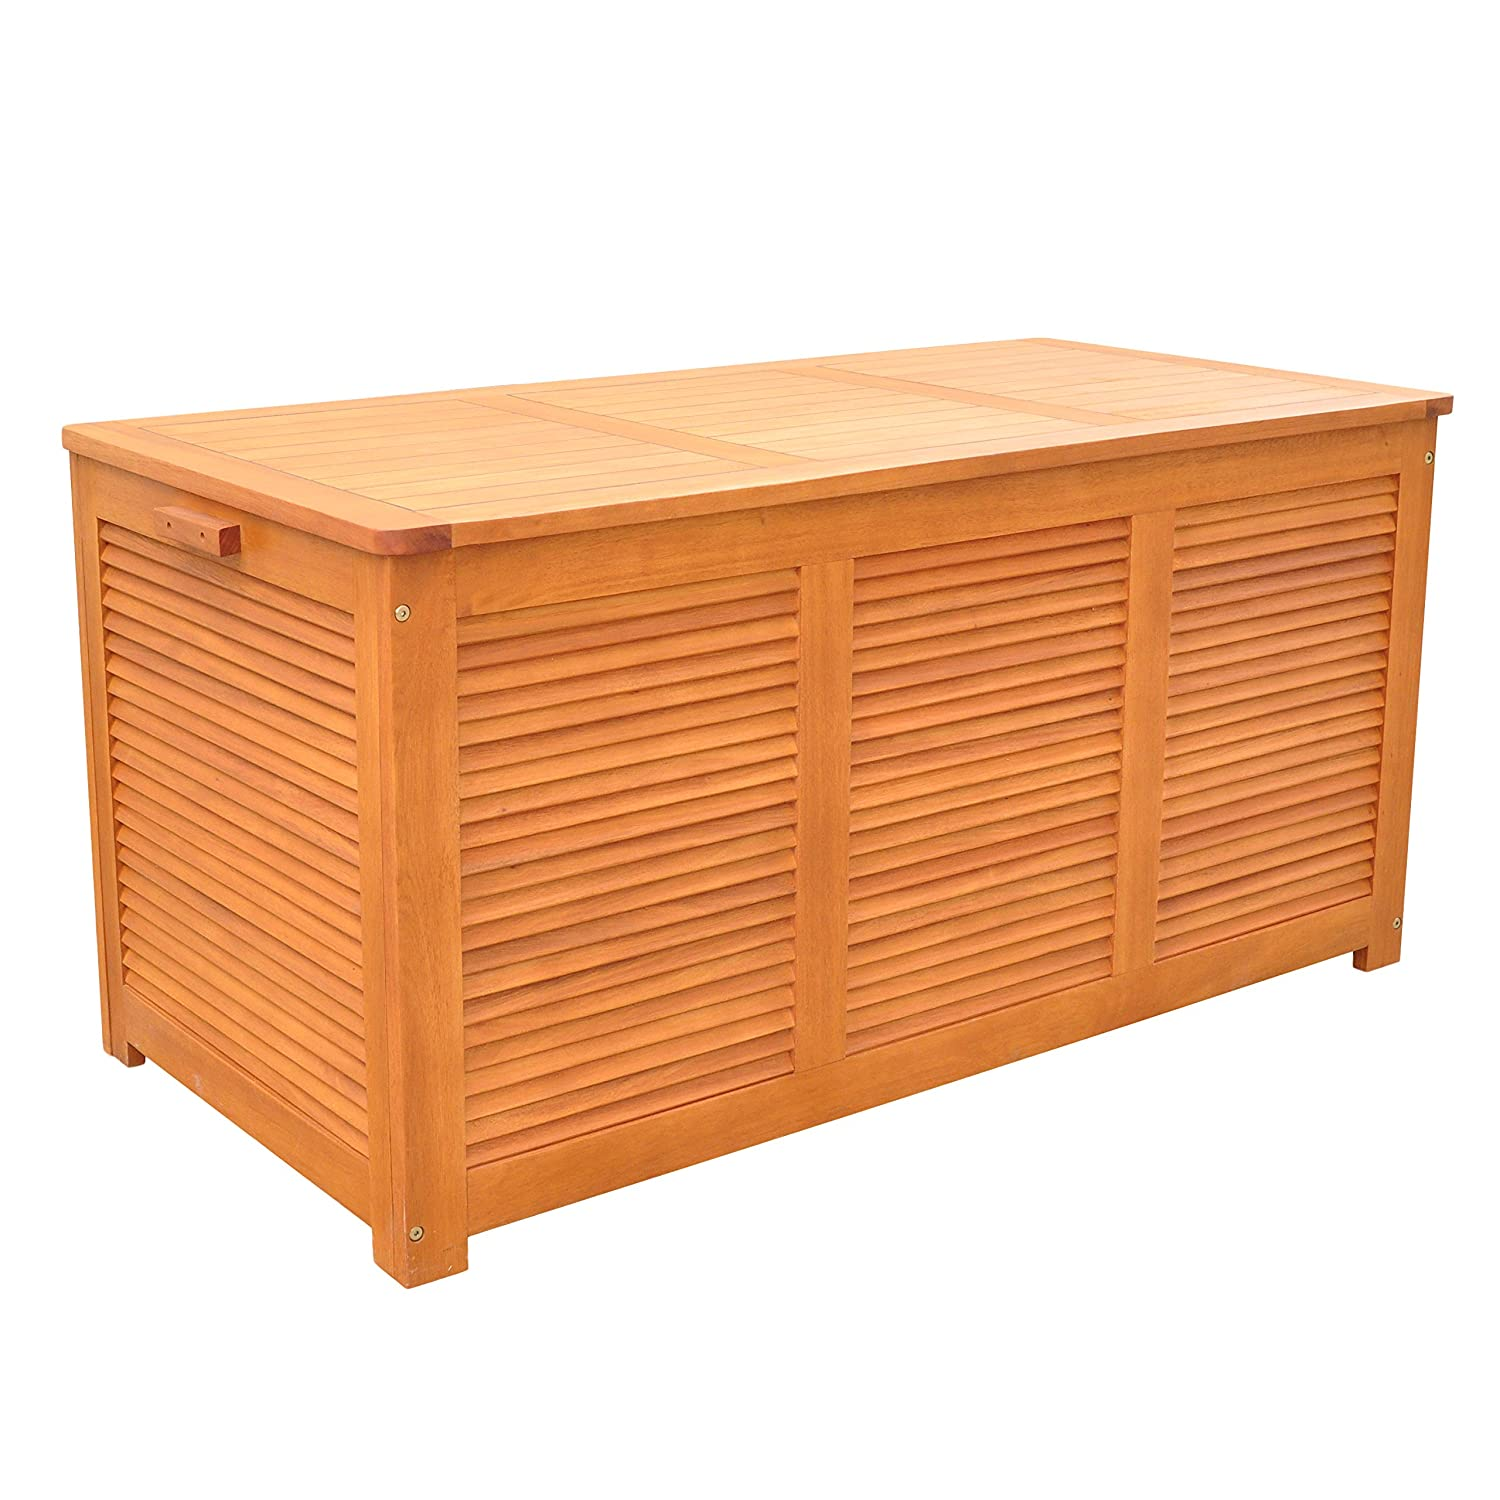 Amazon Com Merry Products Box0010210000 Outdoor Storage Box Deck Boxes Garden Outdoor